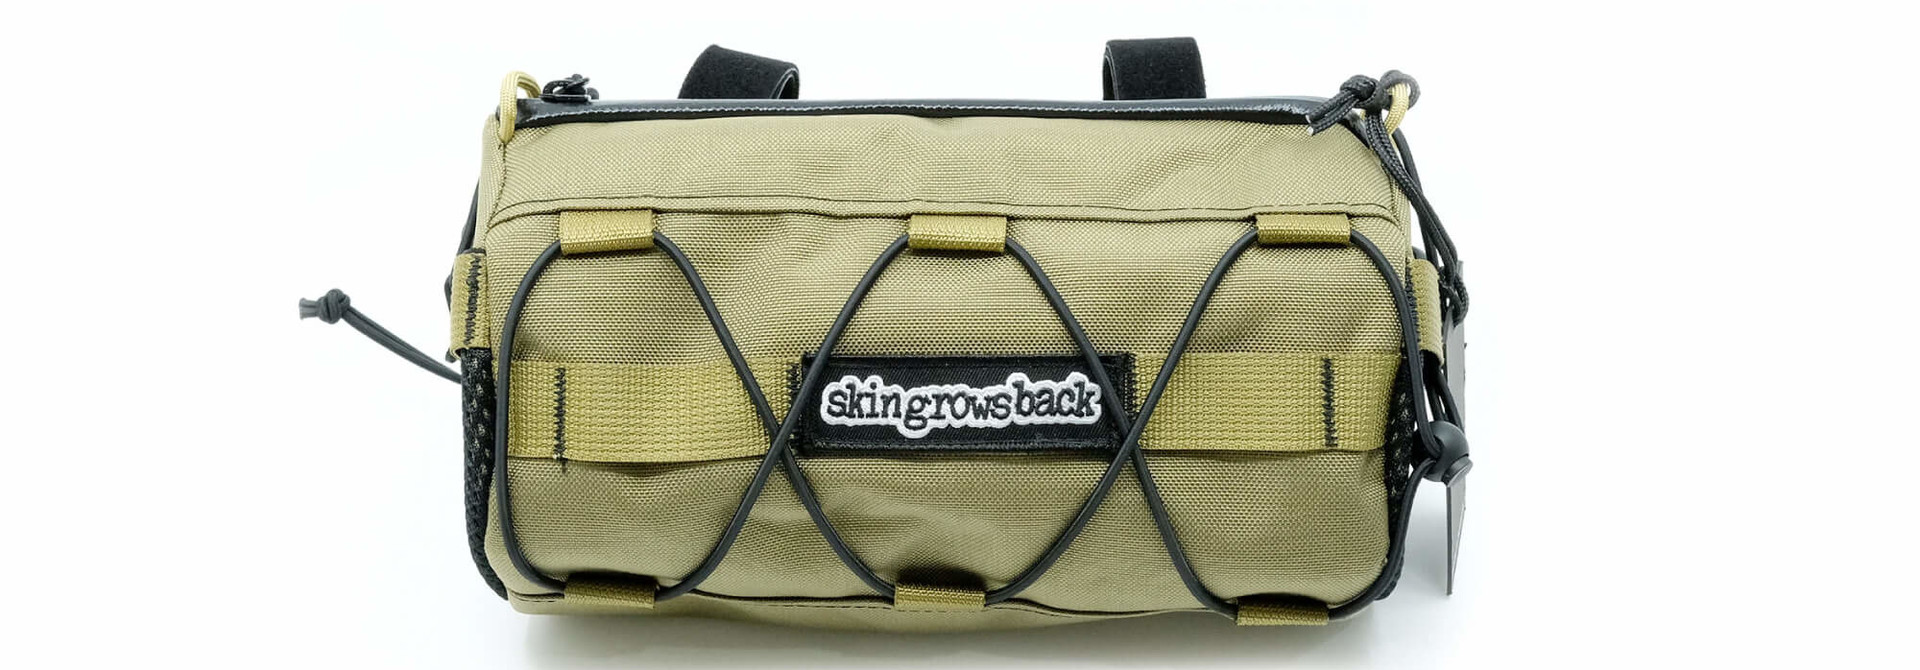 Lunchbox Handlebar Bag